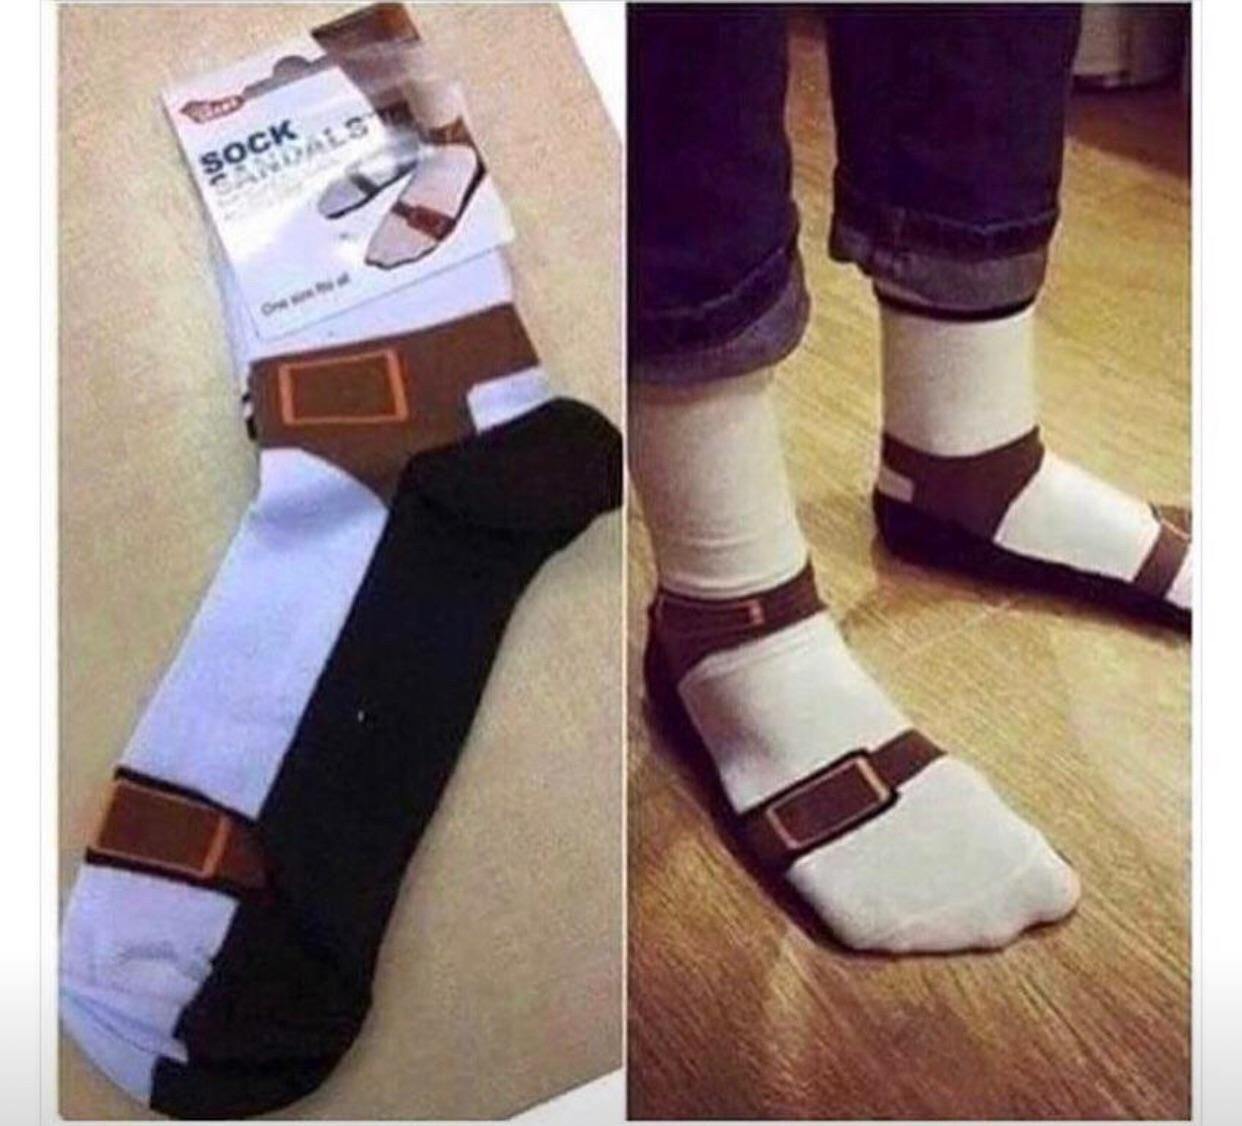 The perfect pair of socks doesn't exi...